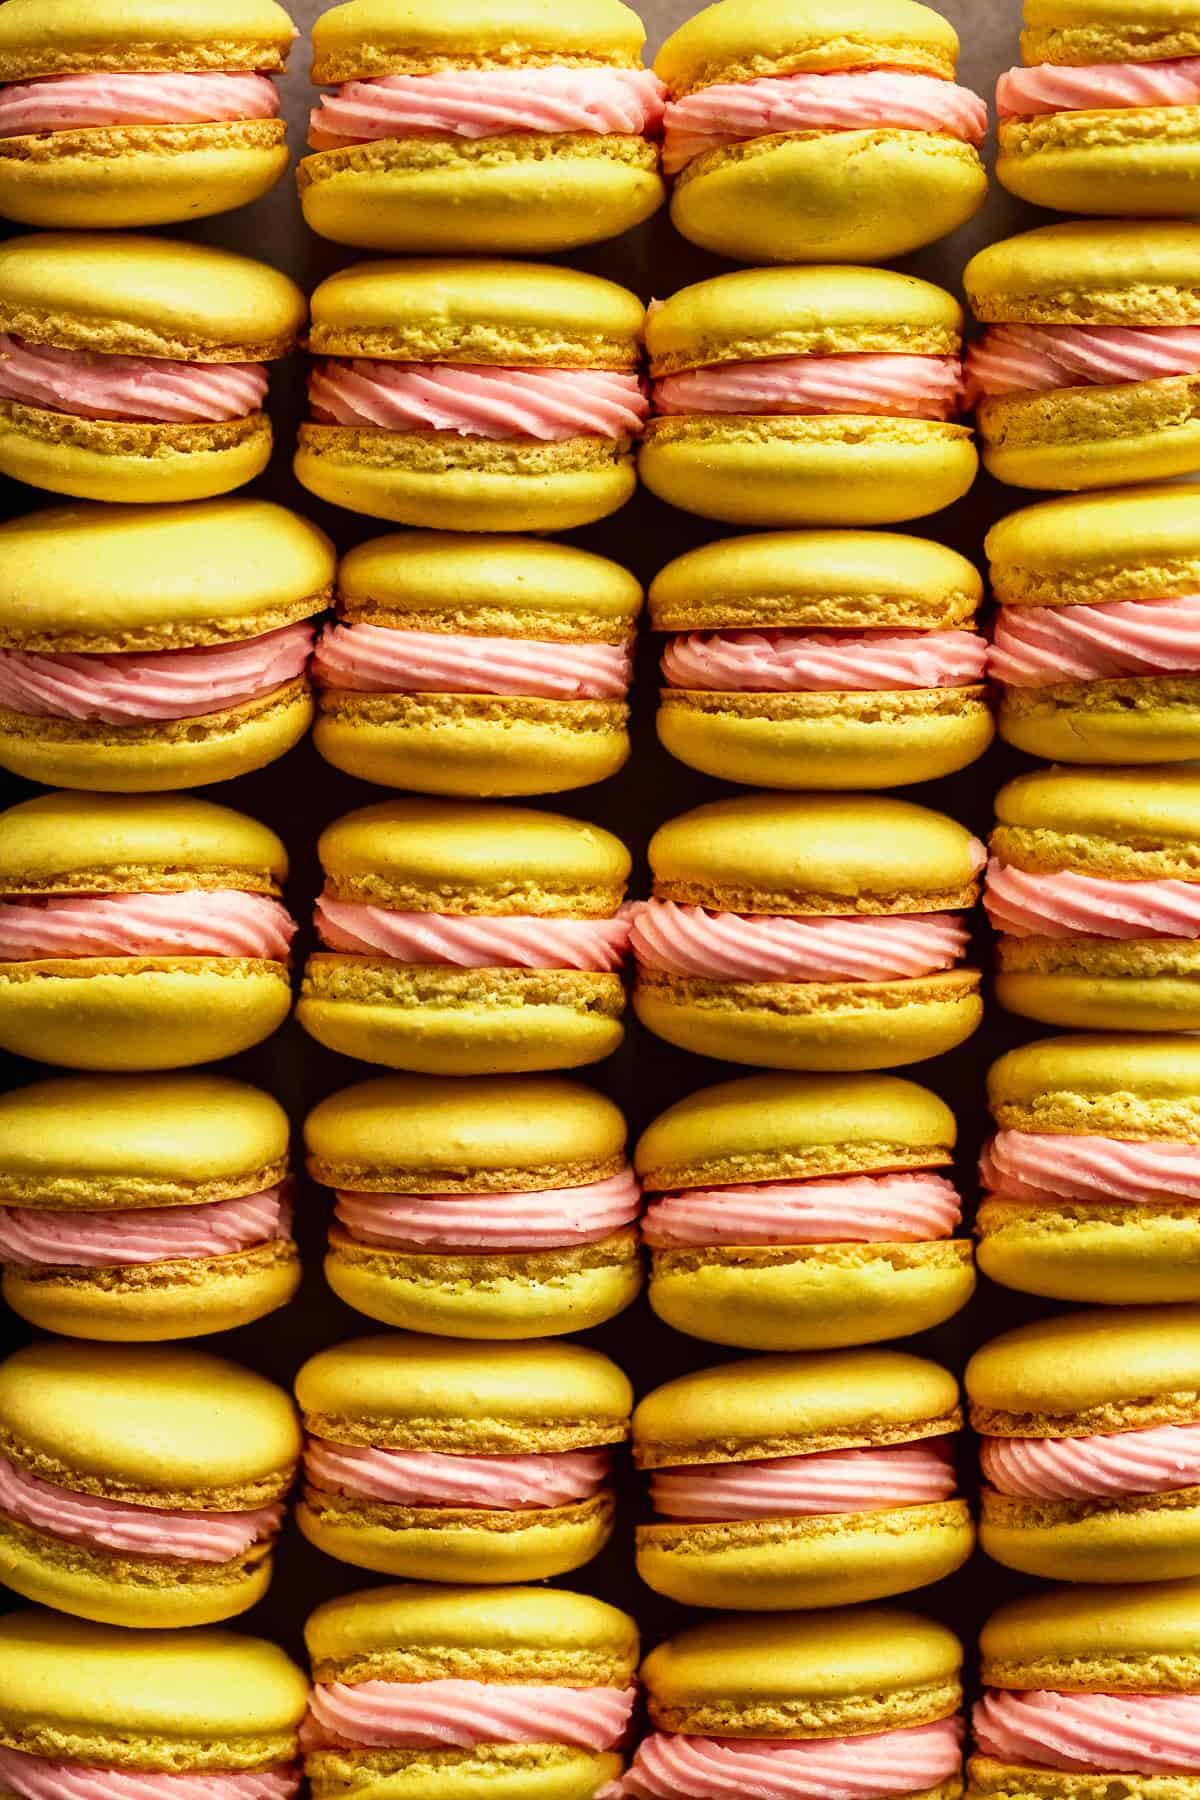 Lemonade macarons with pink icing lined up in rows.